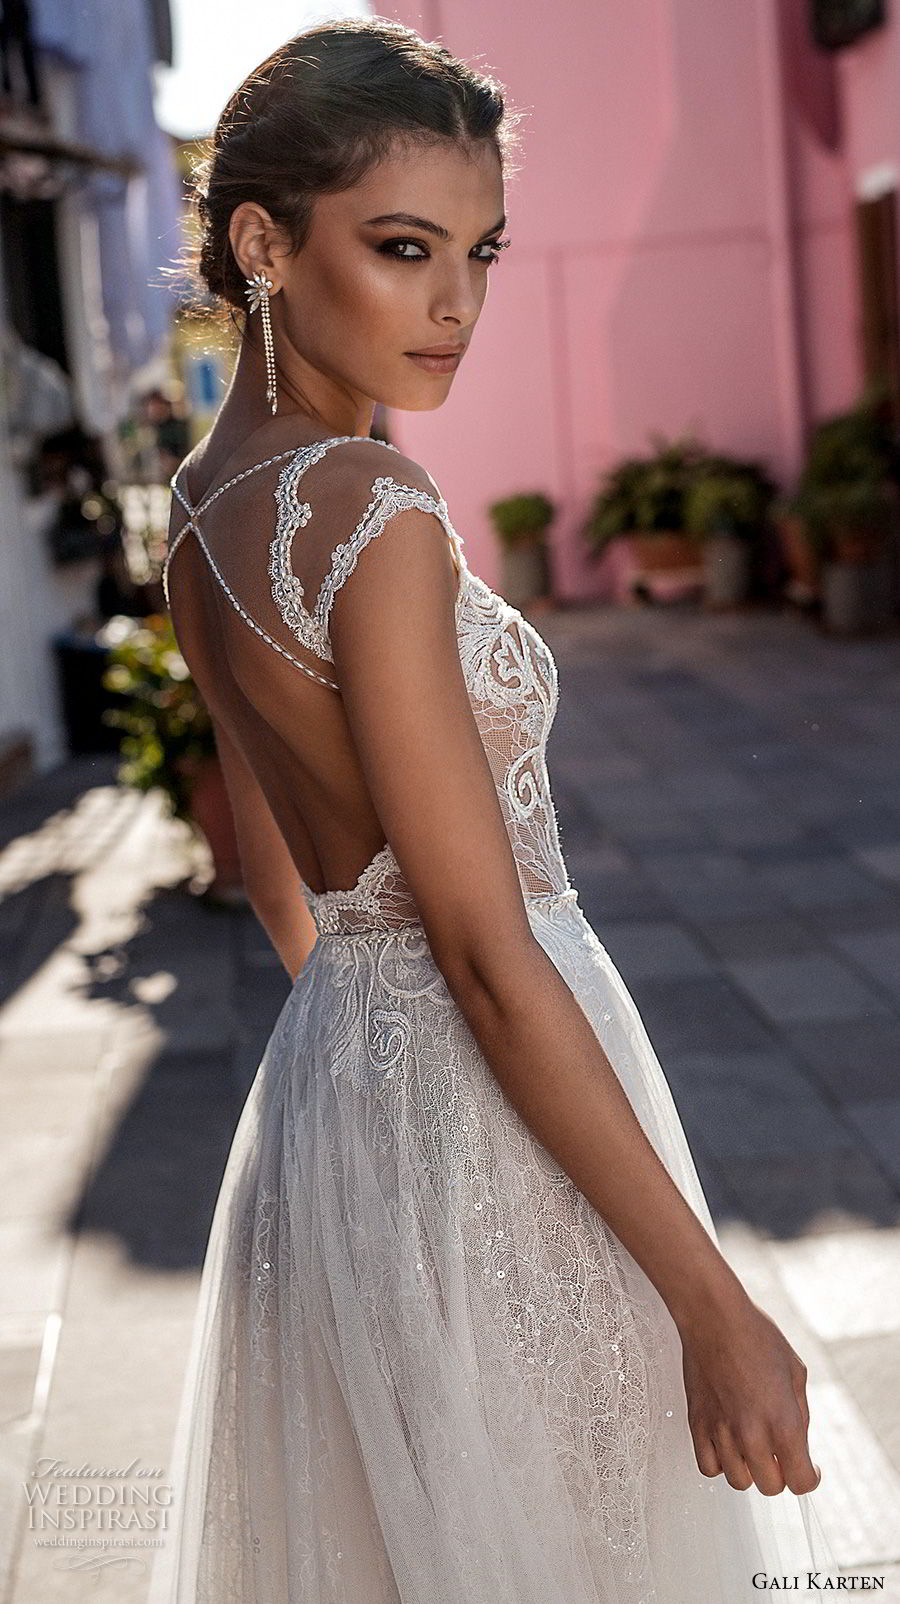 gali karten 2018 bridal cap sleeves scoop neckline heavily embellished bodice romantic soft a  line wedding dress keyhole back medium train (2) zbv